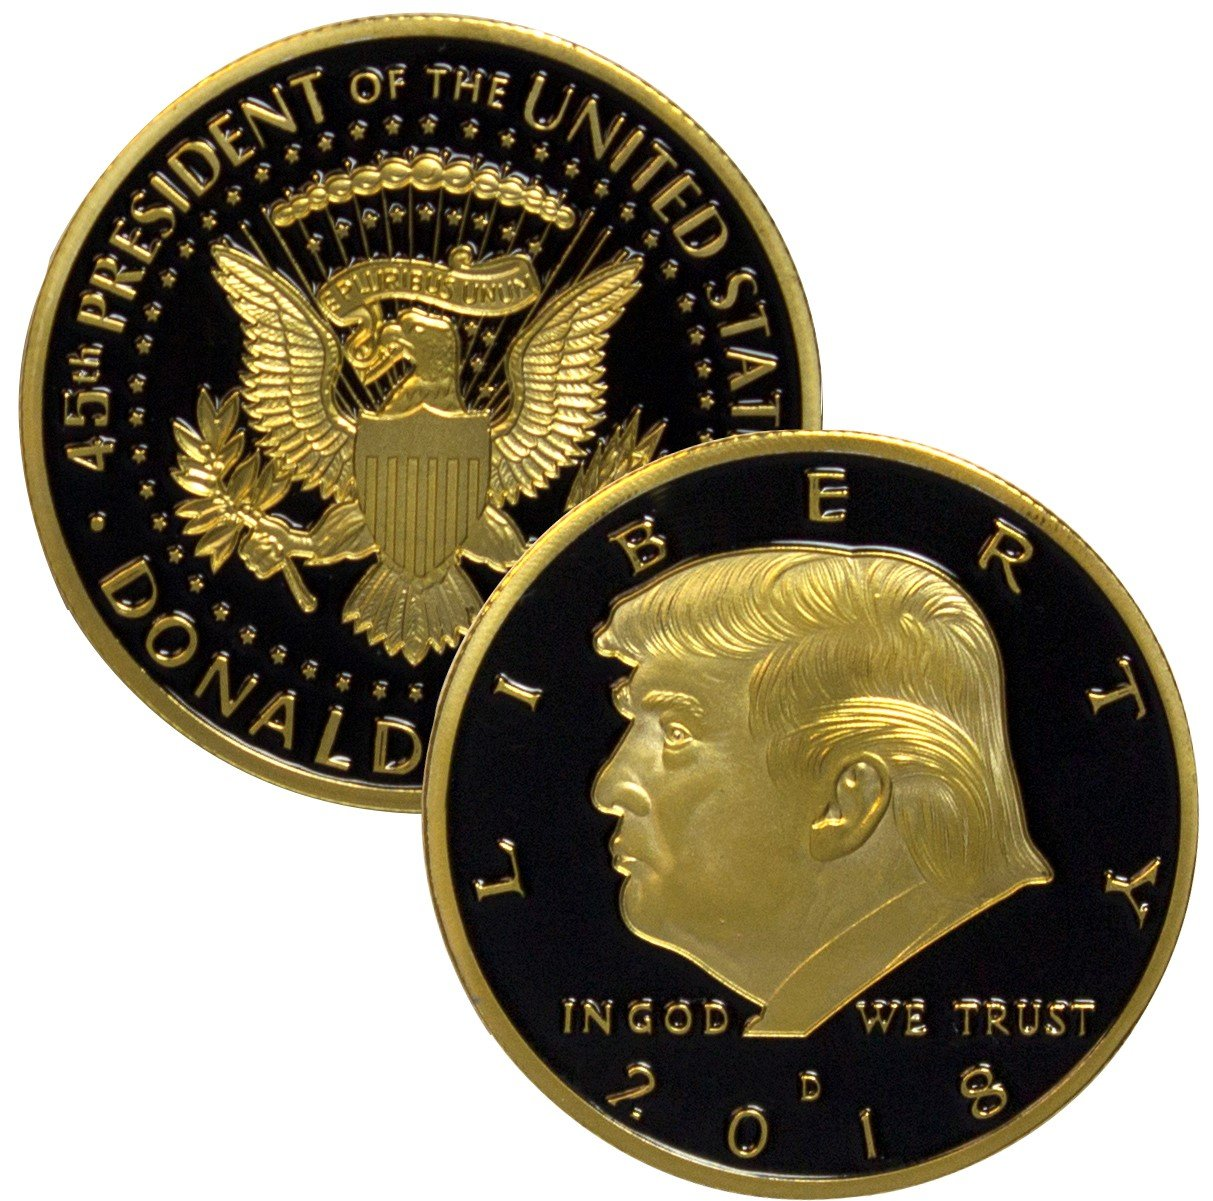 2018 Donald Trump Black & Gold EAGLE Commemorative 24kt Gold Plated Collectible Coin 38mm. 45th President of the United States of America CERTIFICATE OF AUTHENTICITY Aizics Mint Original Design